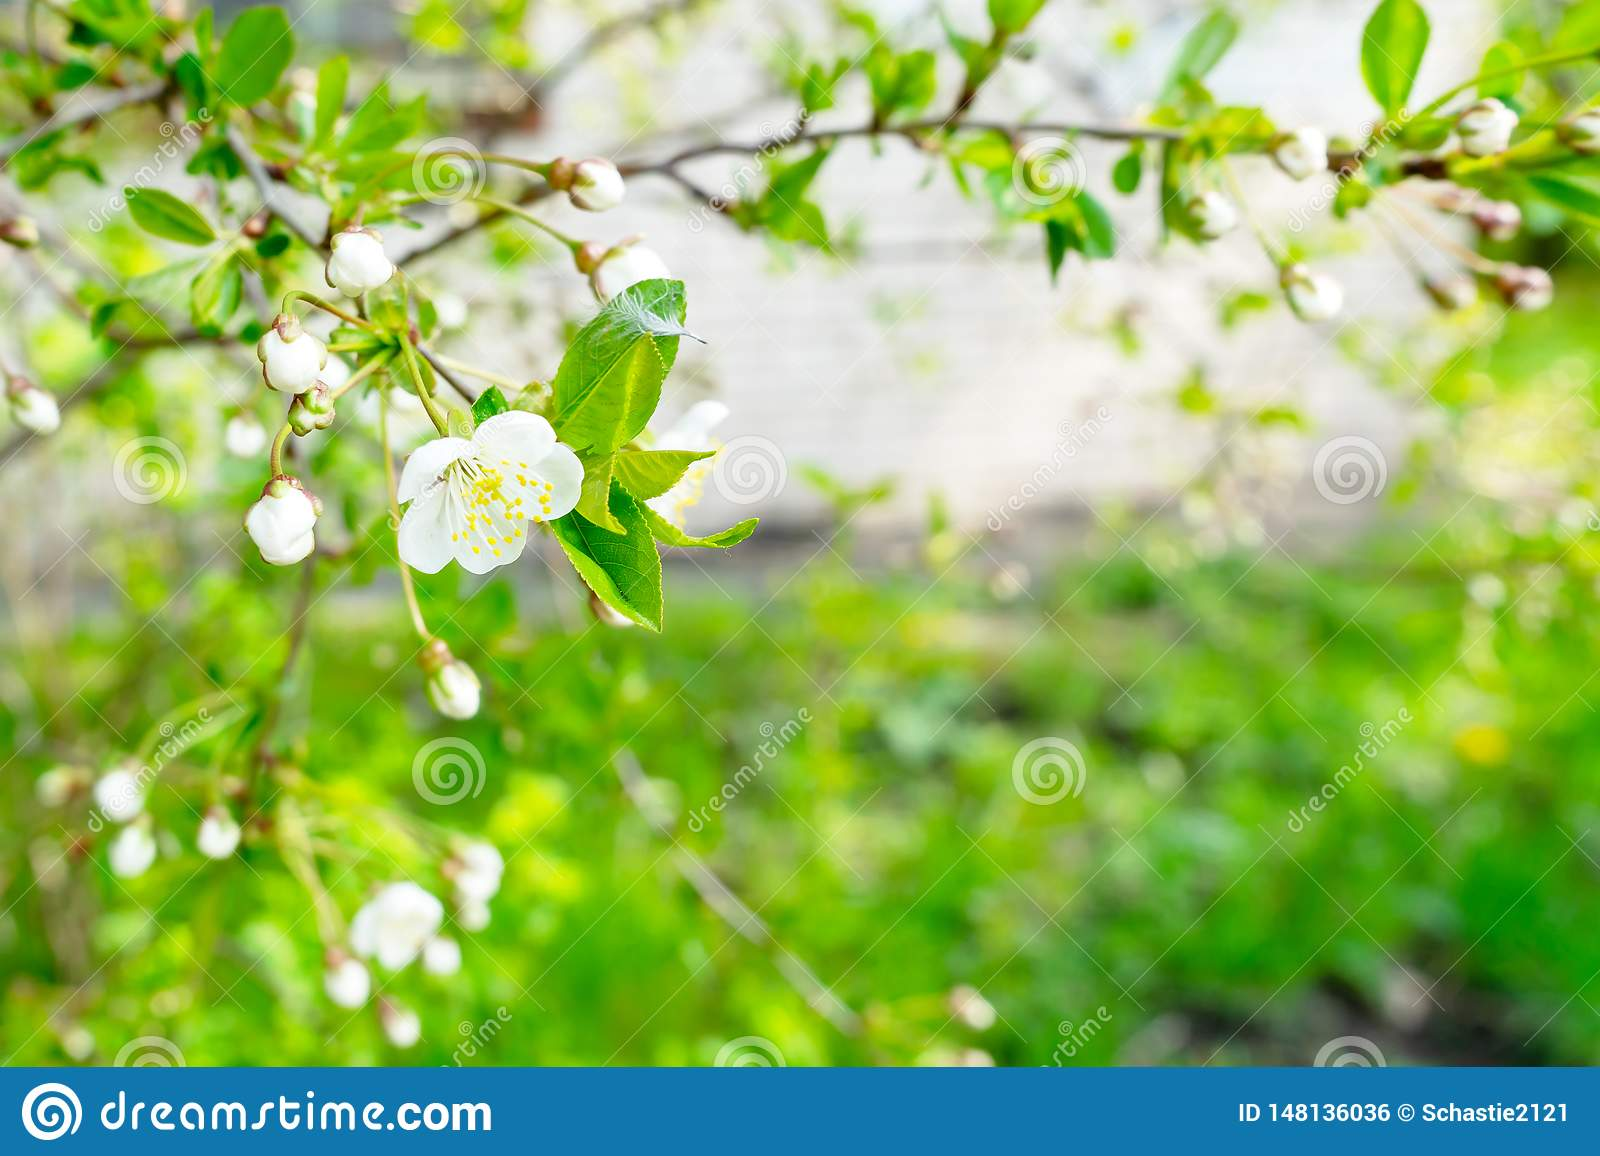 Blooming cherry closeup. Flowers are white.